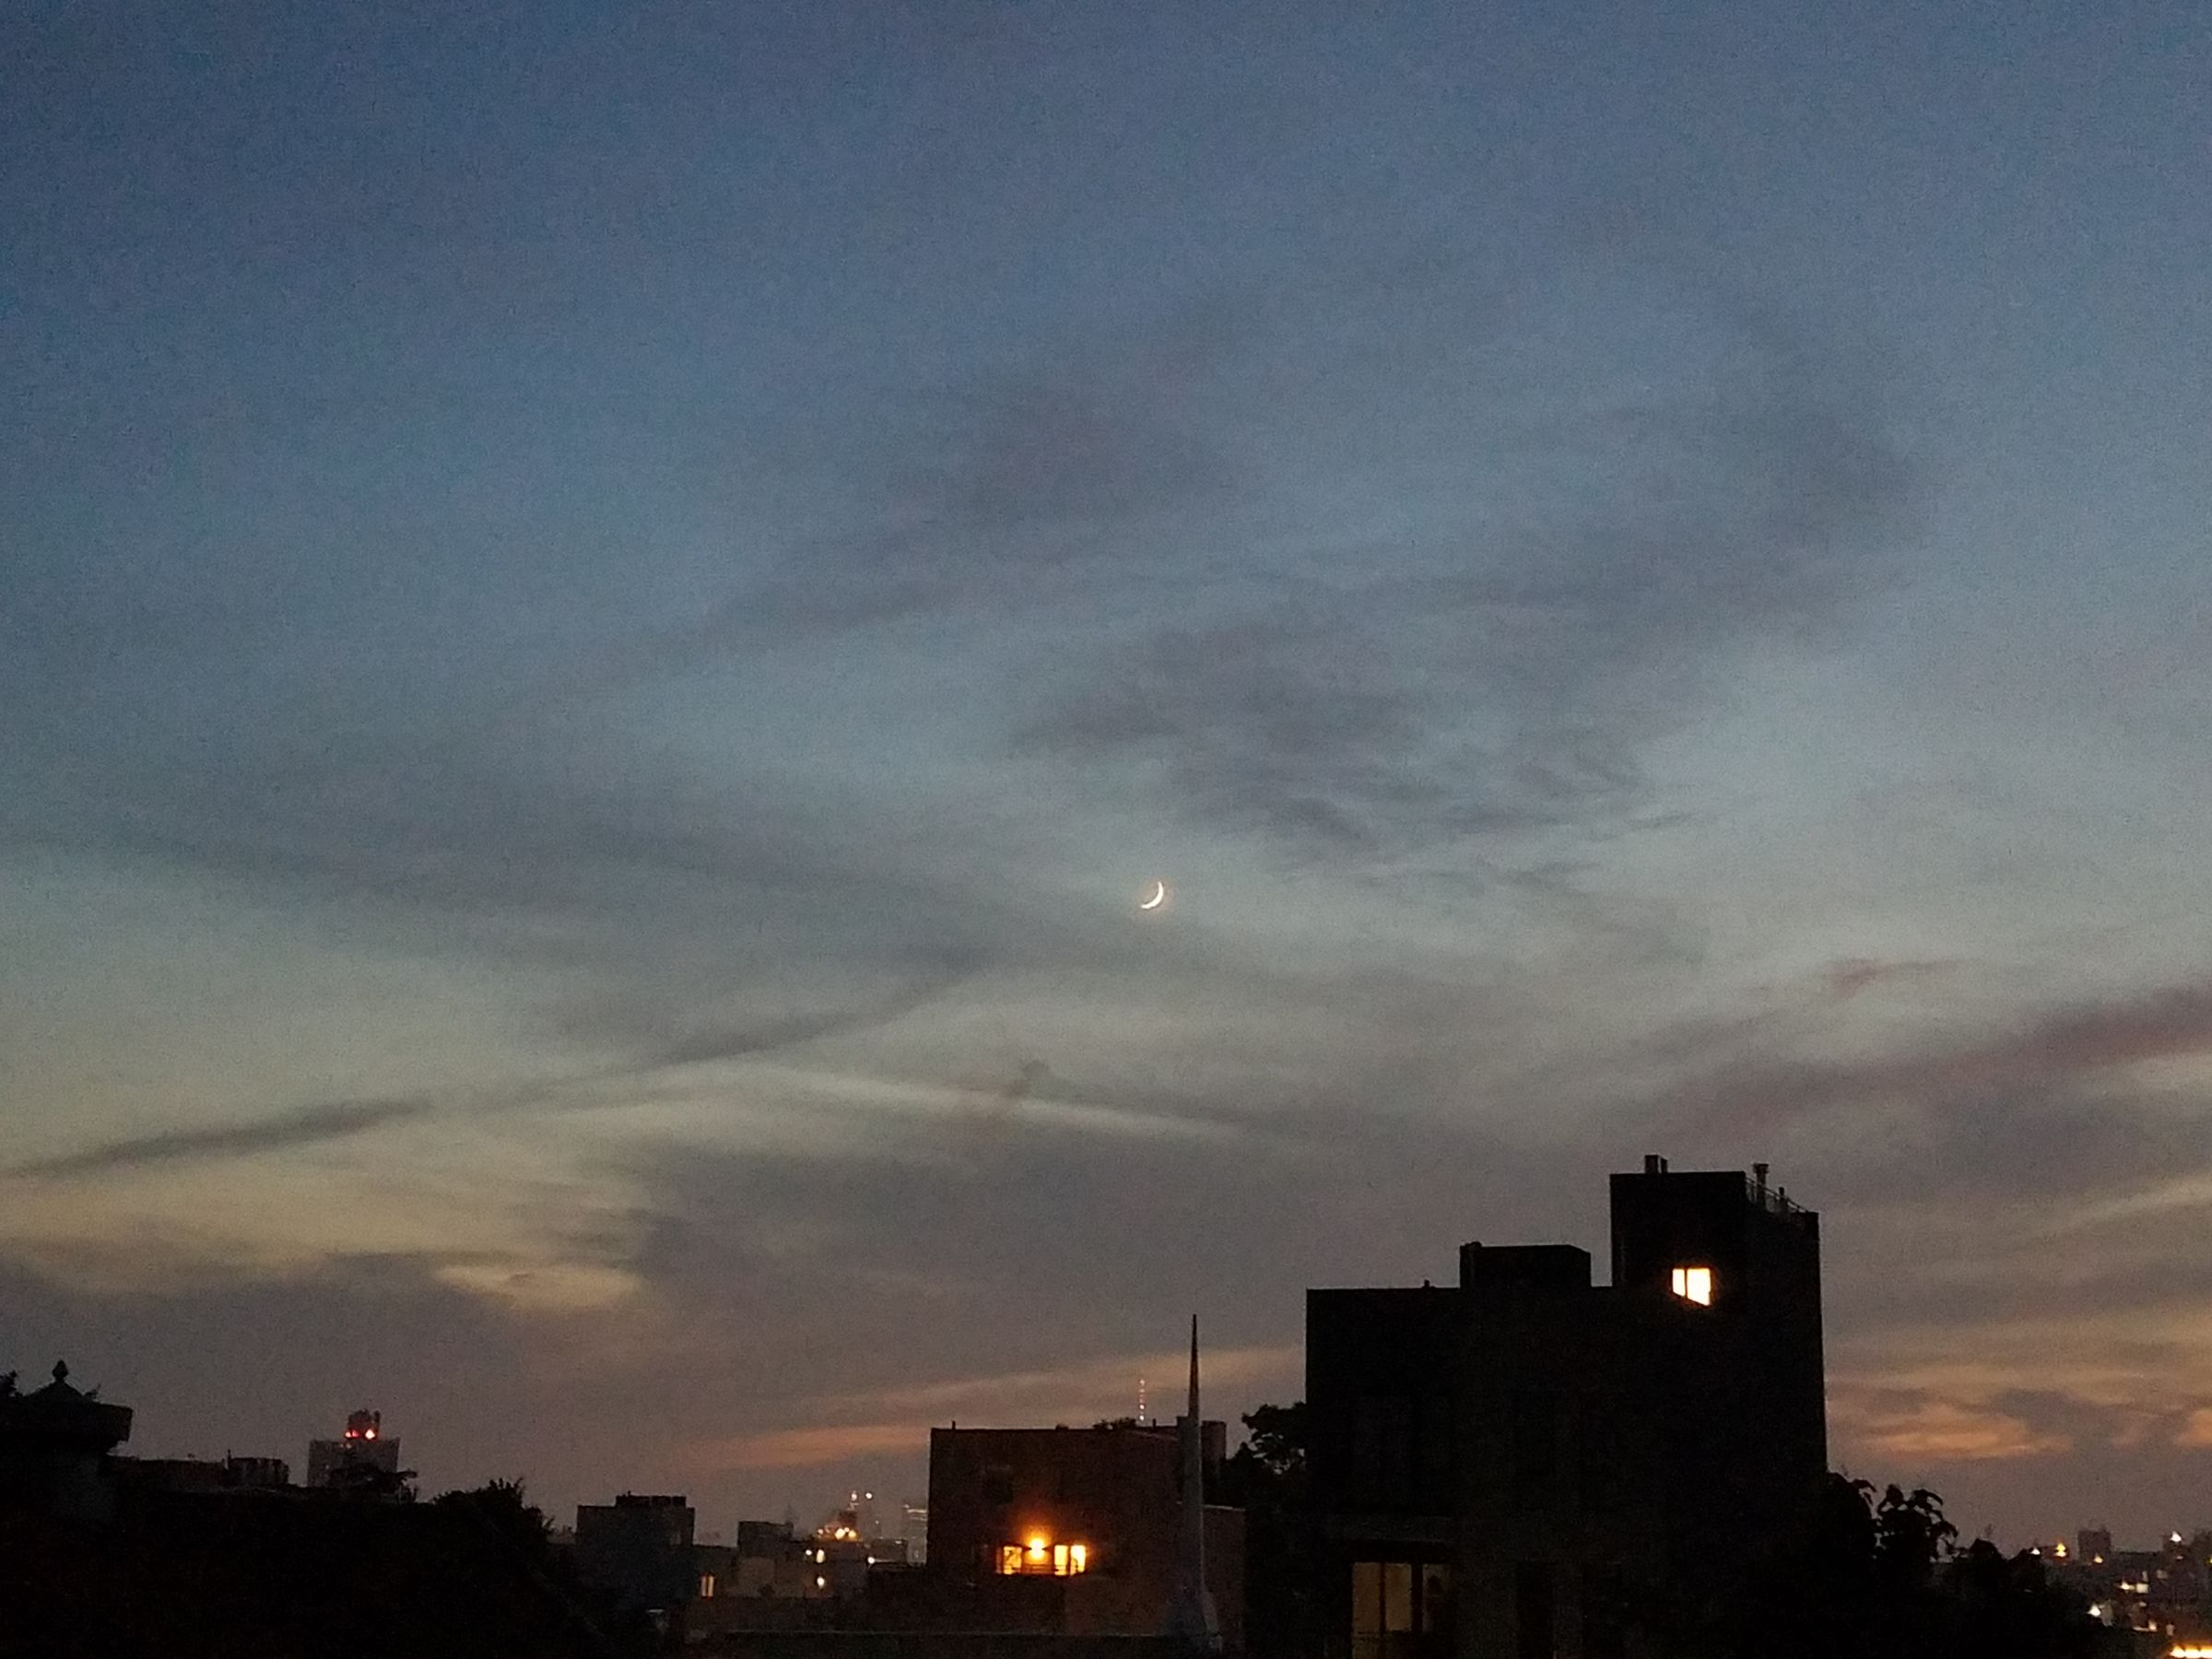 Photograph taken at dusk of a dark skyline under a blue sky, with a hint of sunset on the horizon, covered in patches of wispy clouds. The moon is barely crescent, and is the only visible object in the sky.